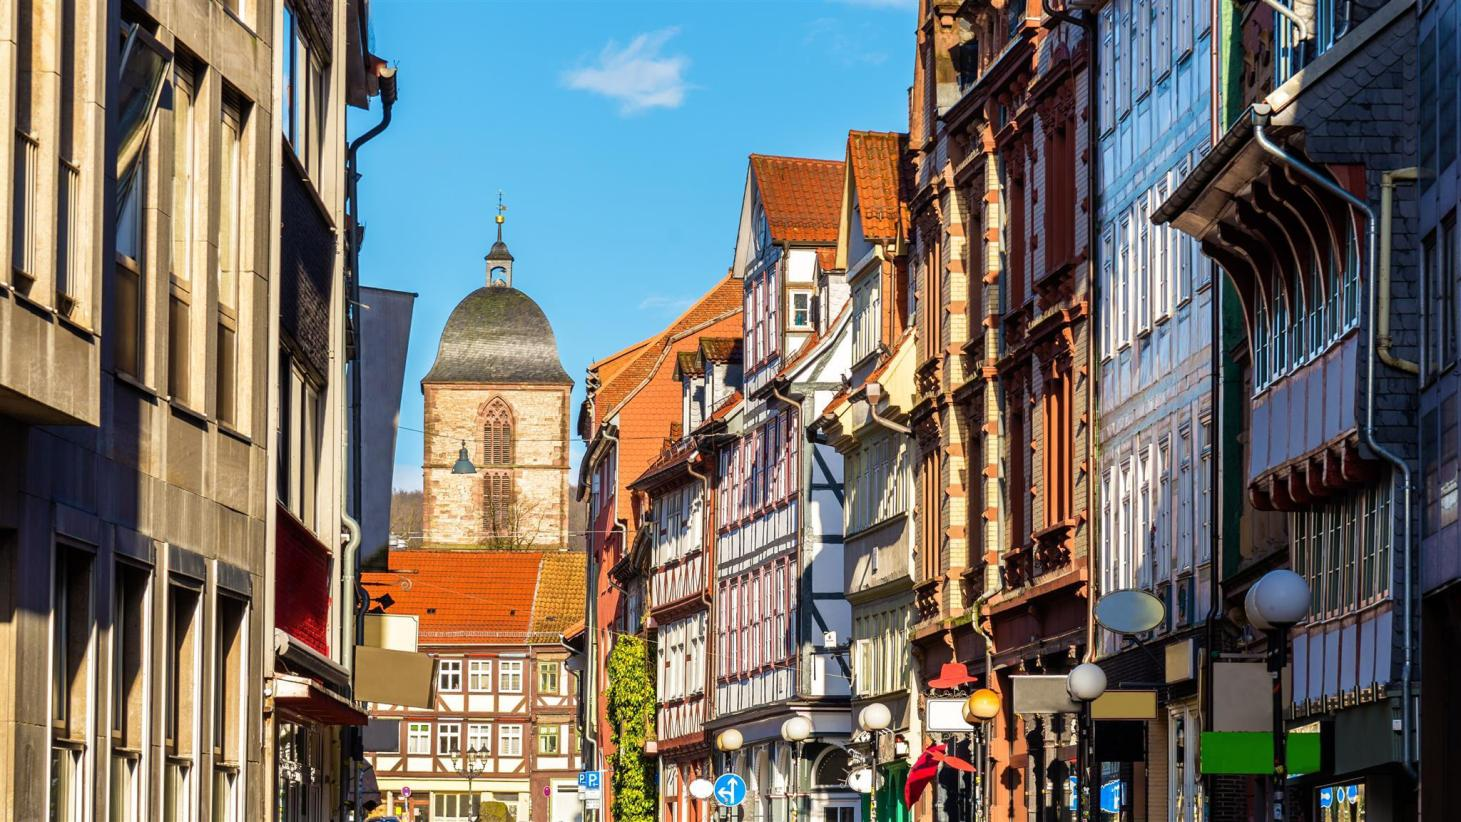 30 Best Gottingen Hotels Free Cancellation 2020 Price Lists Reviews Of The Best Hotels In Gottingen Germany